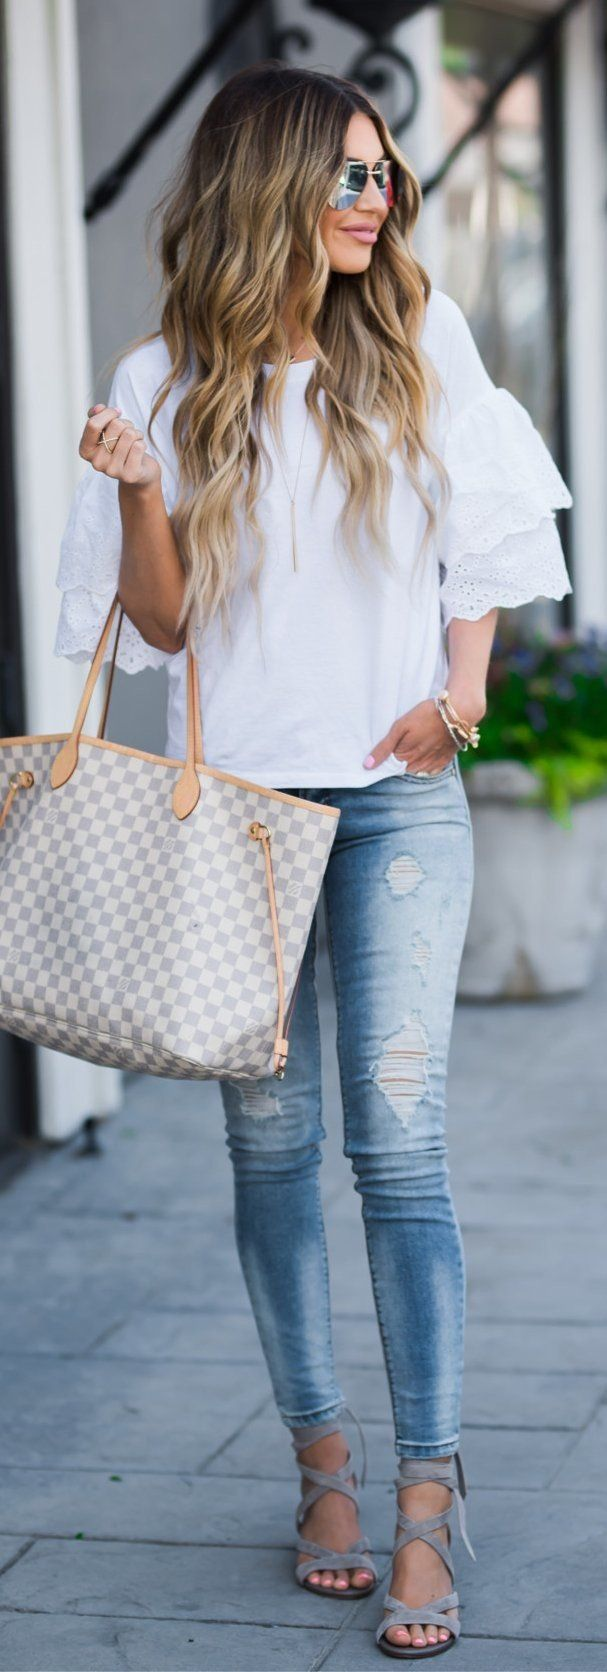 summer outfits White Ruffle Tee + Ripped Skinny Jeans + Grey Sandals + Gingham Tote Bag